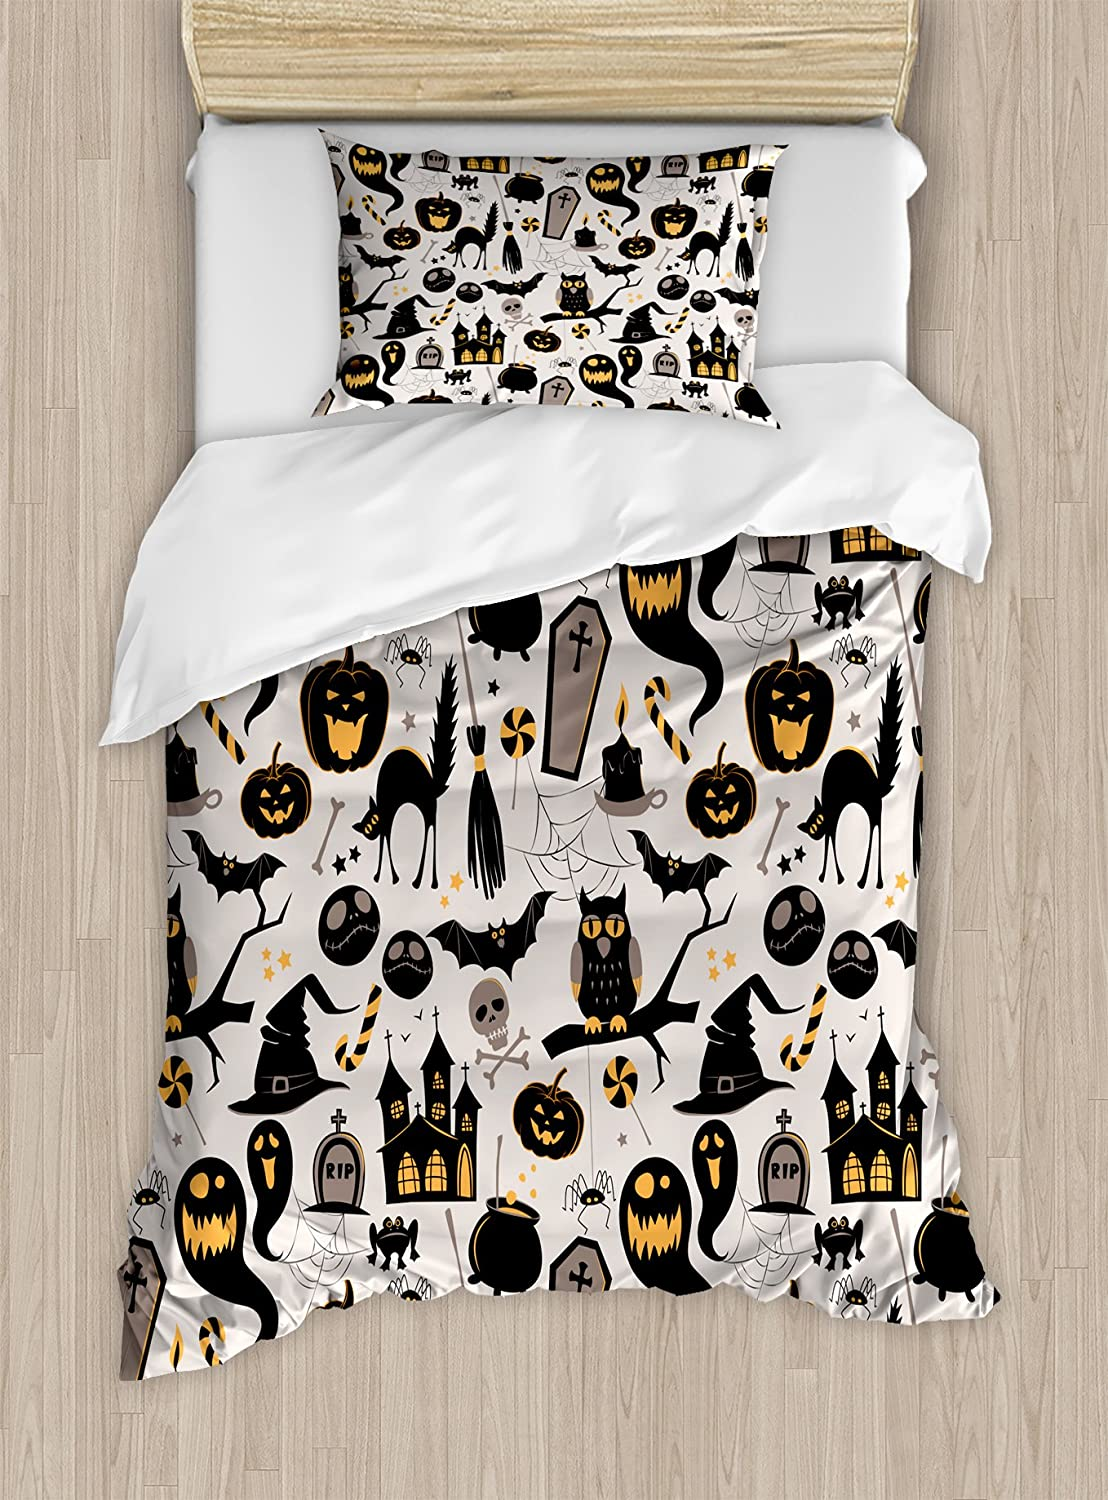 Ambesonne Vintage Halloween Duvet Cover Set Twin Size, Halloween Cartoon Jack o Lantern Tombstone Skulls and Bones, Decorative 2 Piece Bedding Set with 1 Pillow Sham, Pale Grey